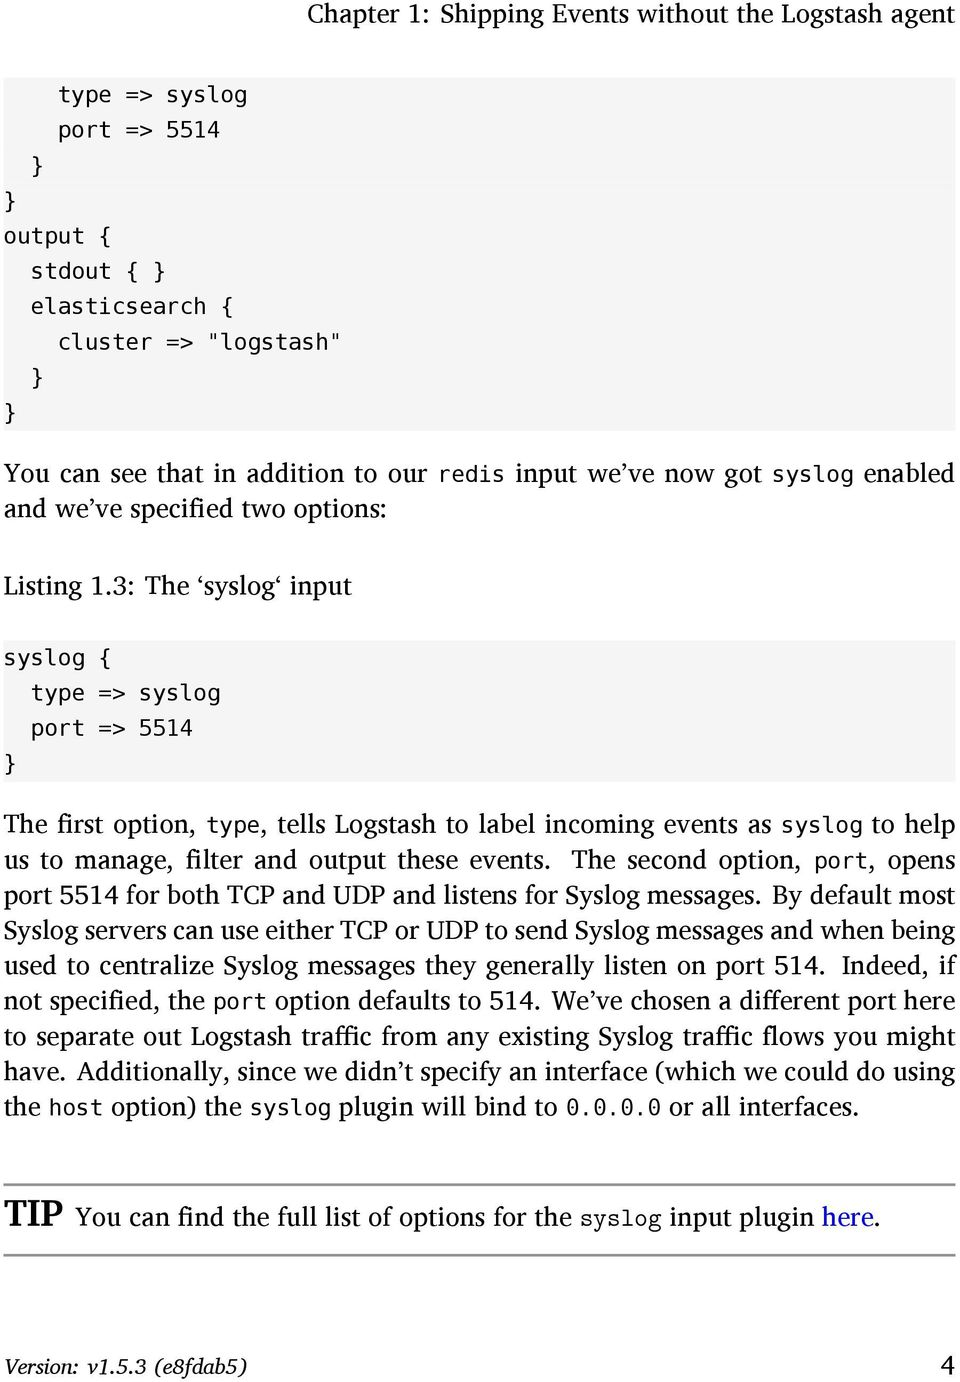 3: The syslog input syslog { } type => syslog port => 5514 The first option, type, tells Logstash to label incoming events as syslog to help us to manage, filter and output these events.